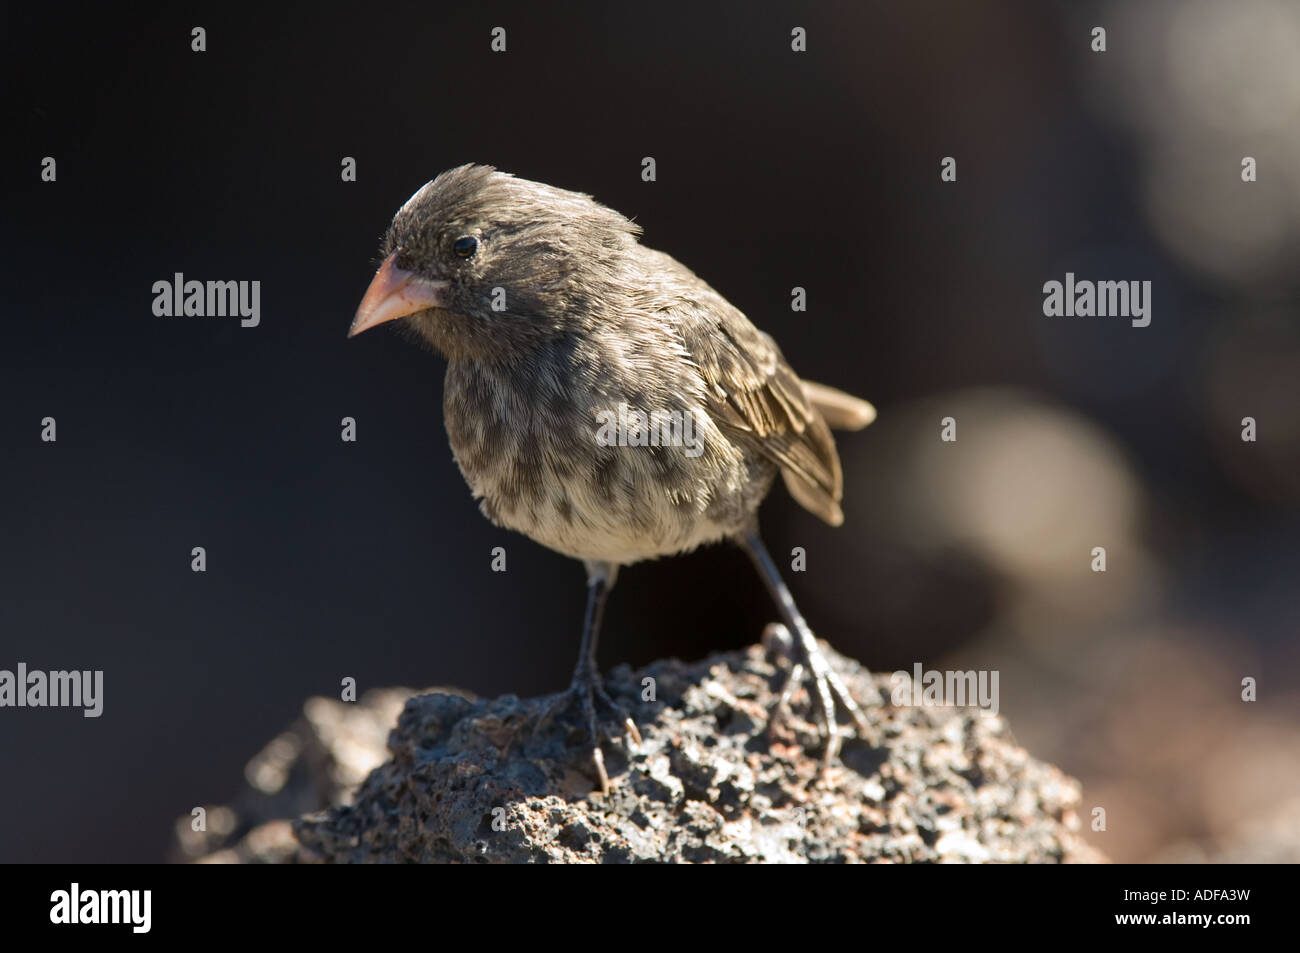 Small-billed Ground Finch (Geospiza fuliginosa) juvenile female, perched on rock Darwin Bay Genovesa Galapagos Ecuador, - Stock Image